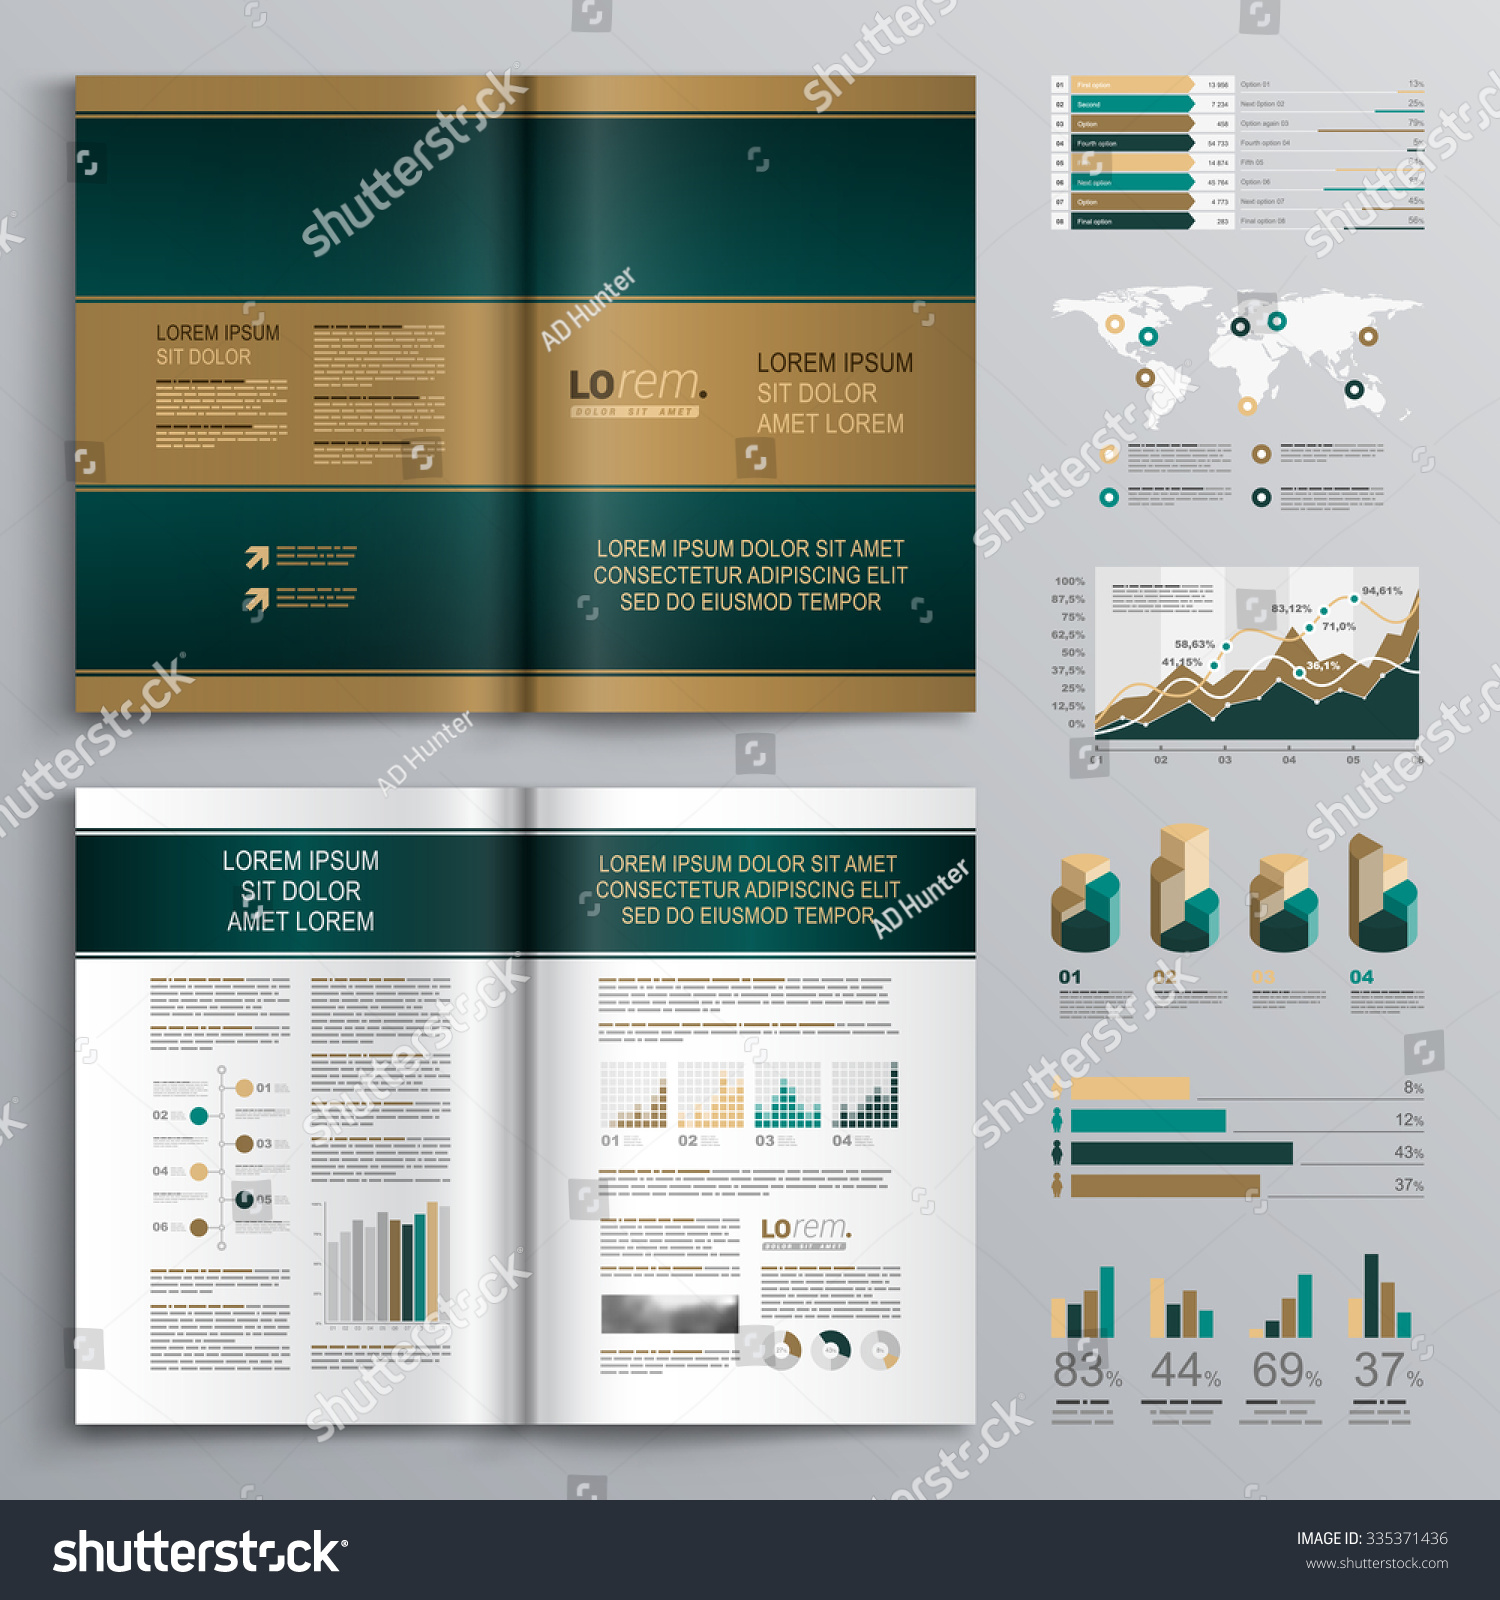 horizontal brochure template - classic brown brochure template design with blue